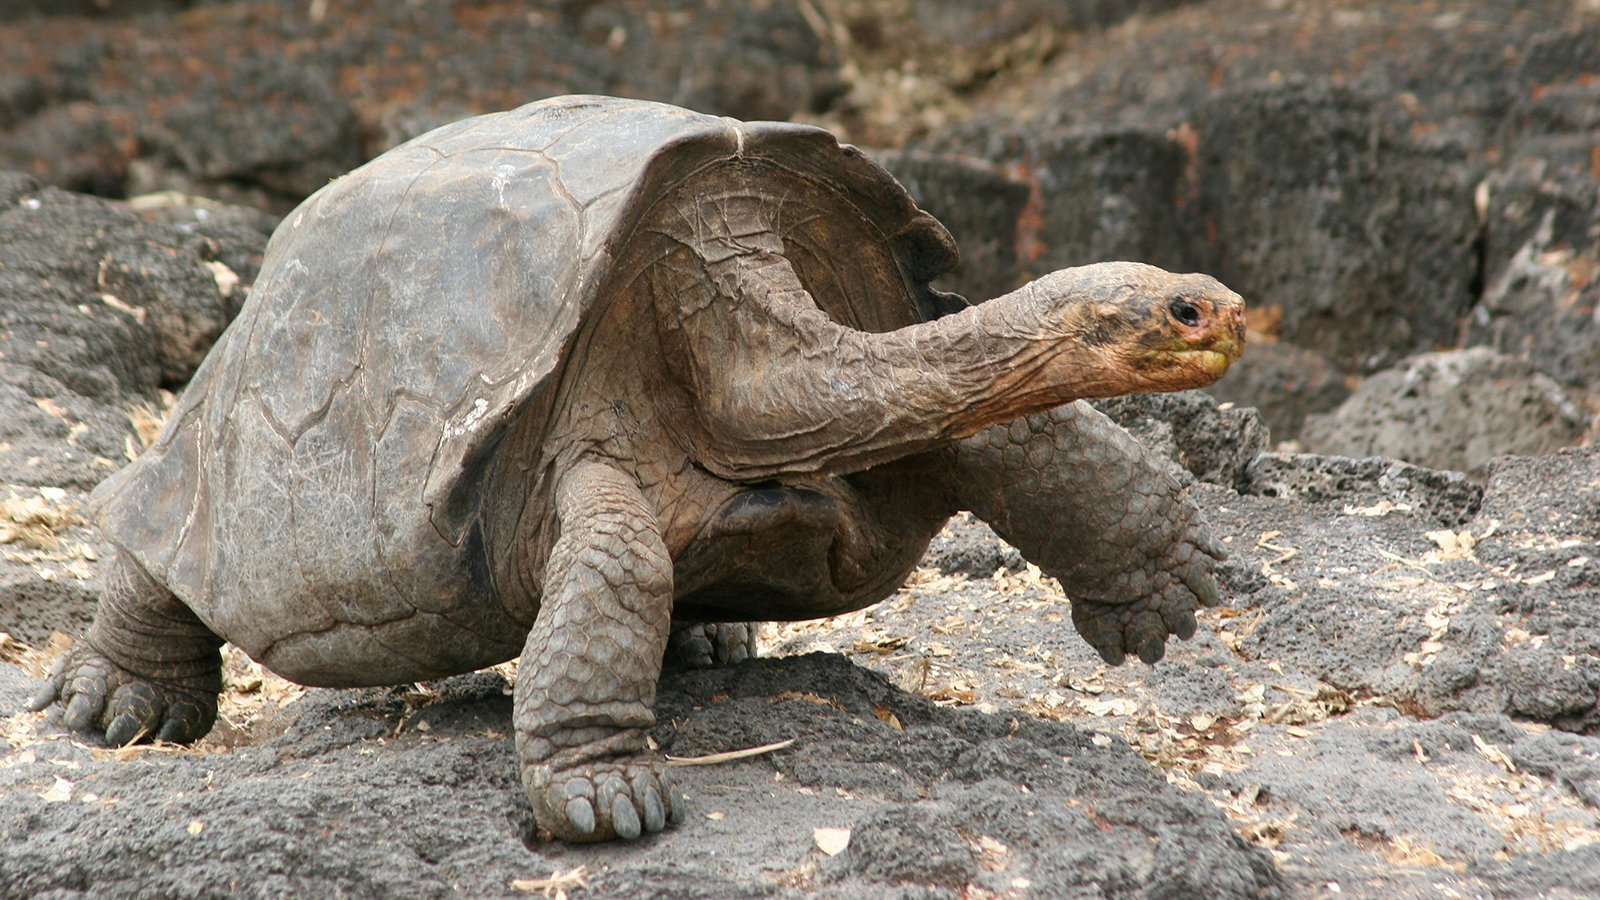 Images of Galápagos Tortoise | 1600x900